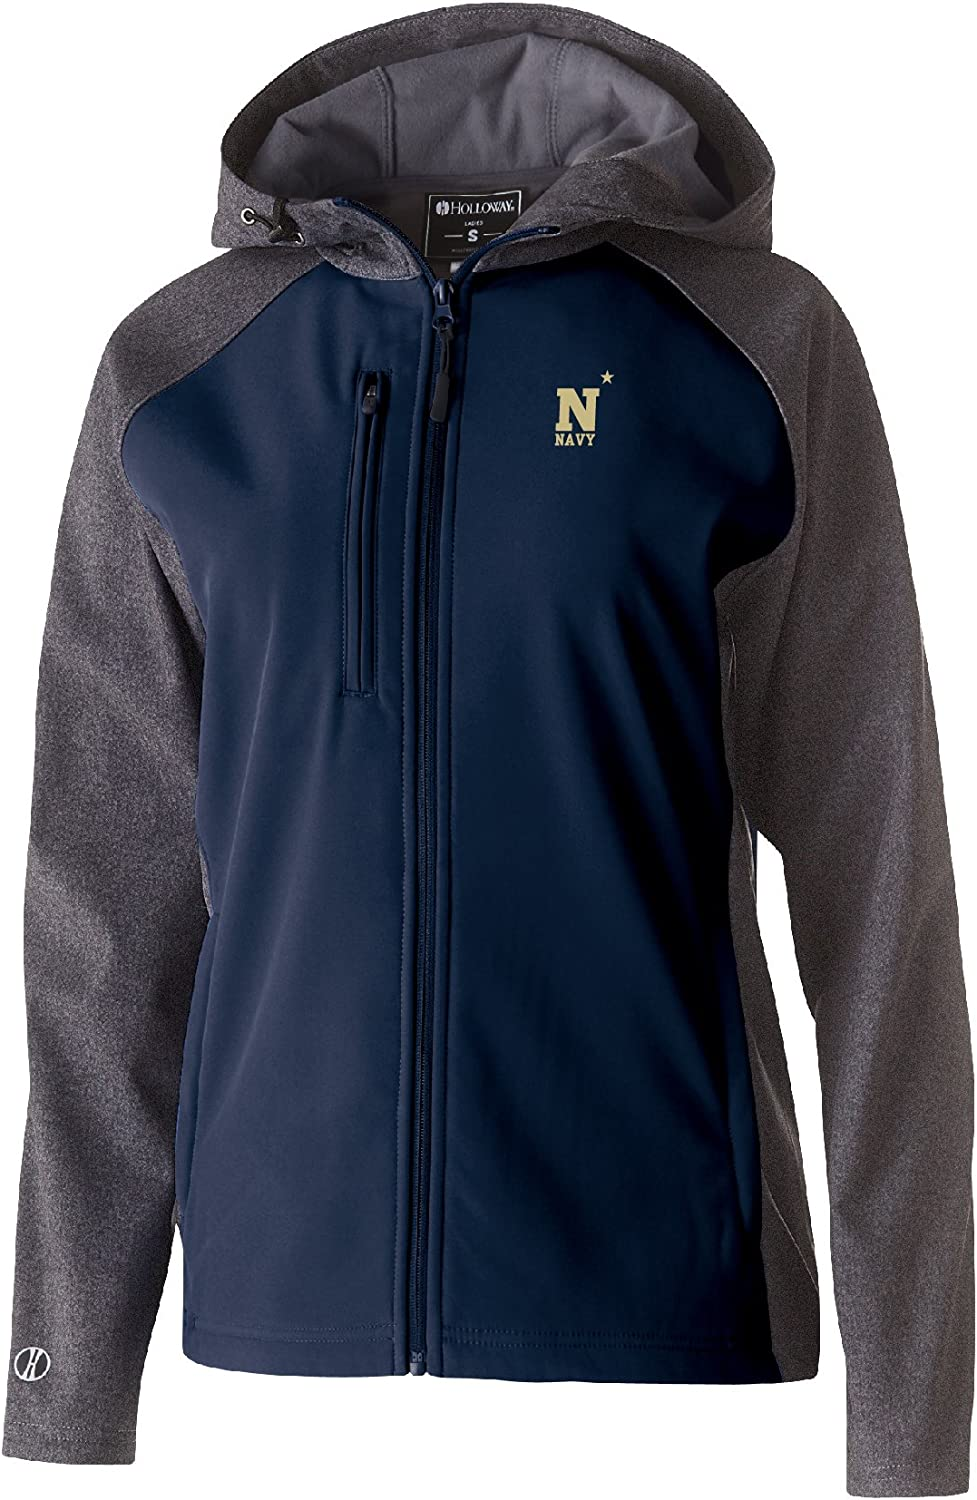 Ouray Sportswear Women's Raider Soft trust low-pricing Shell Jacket